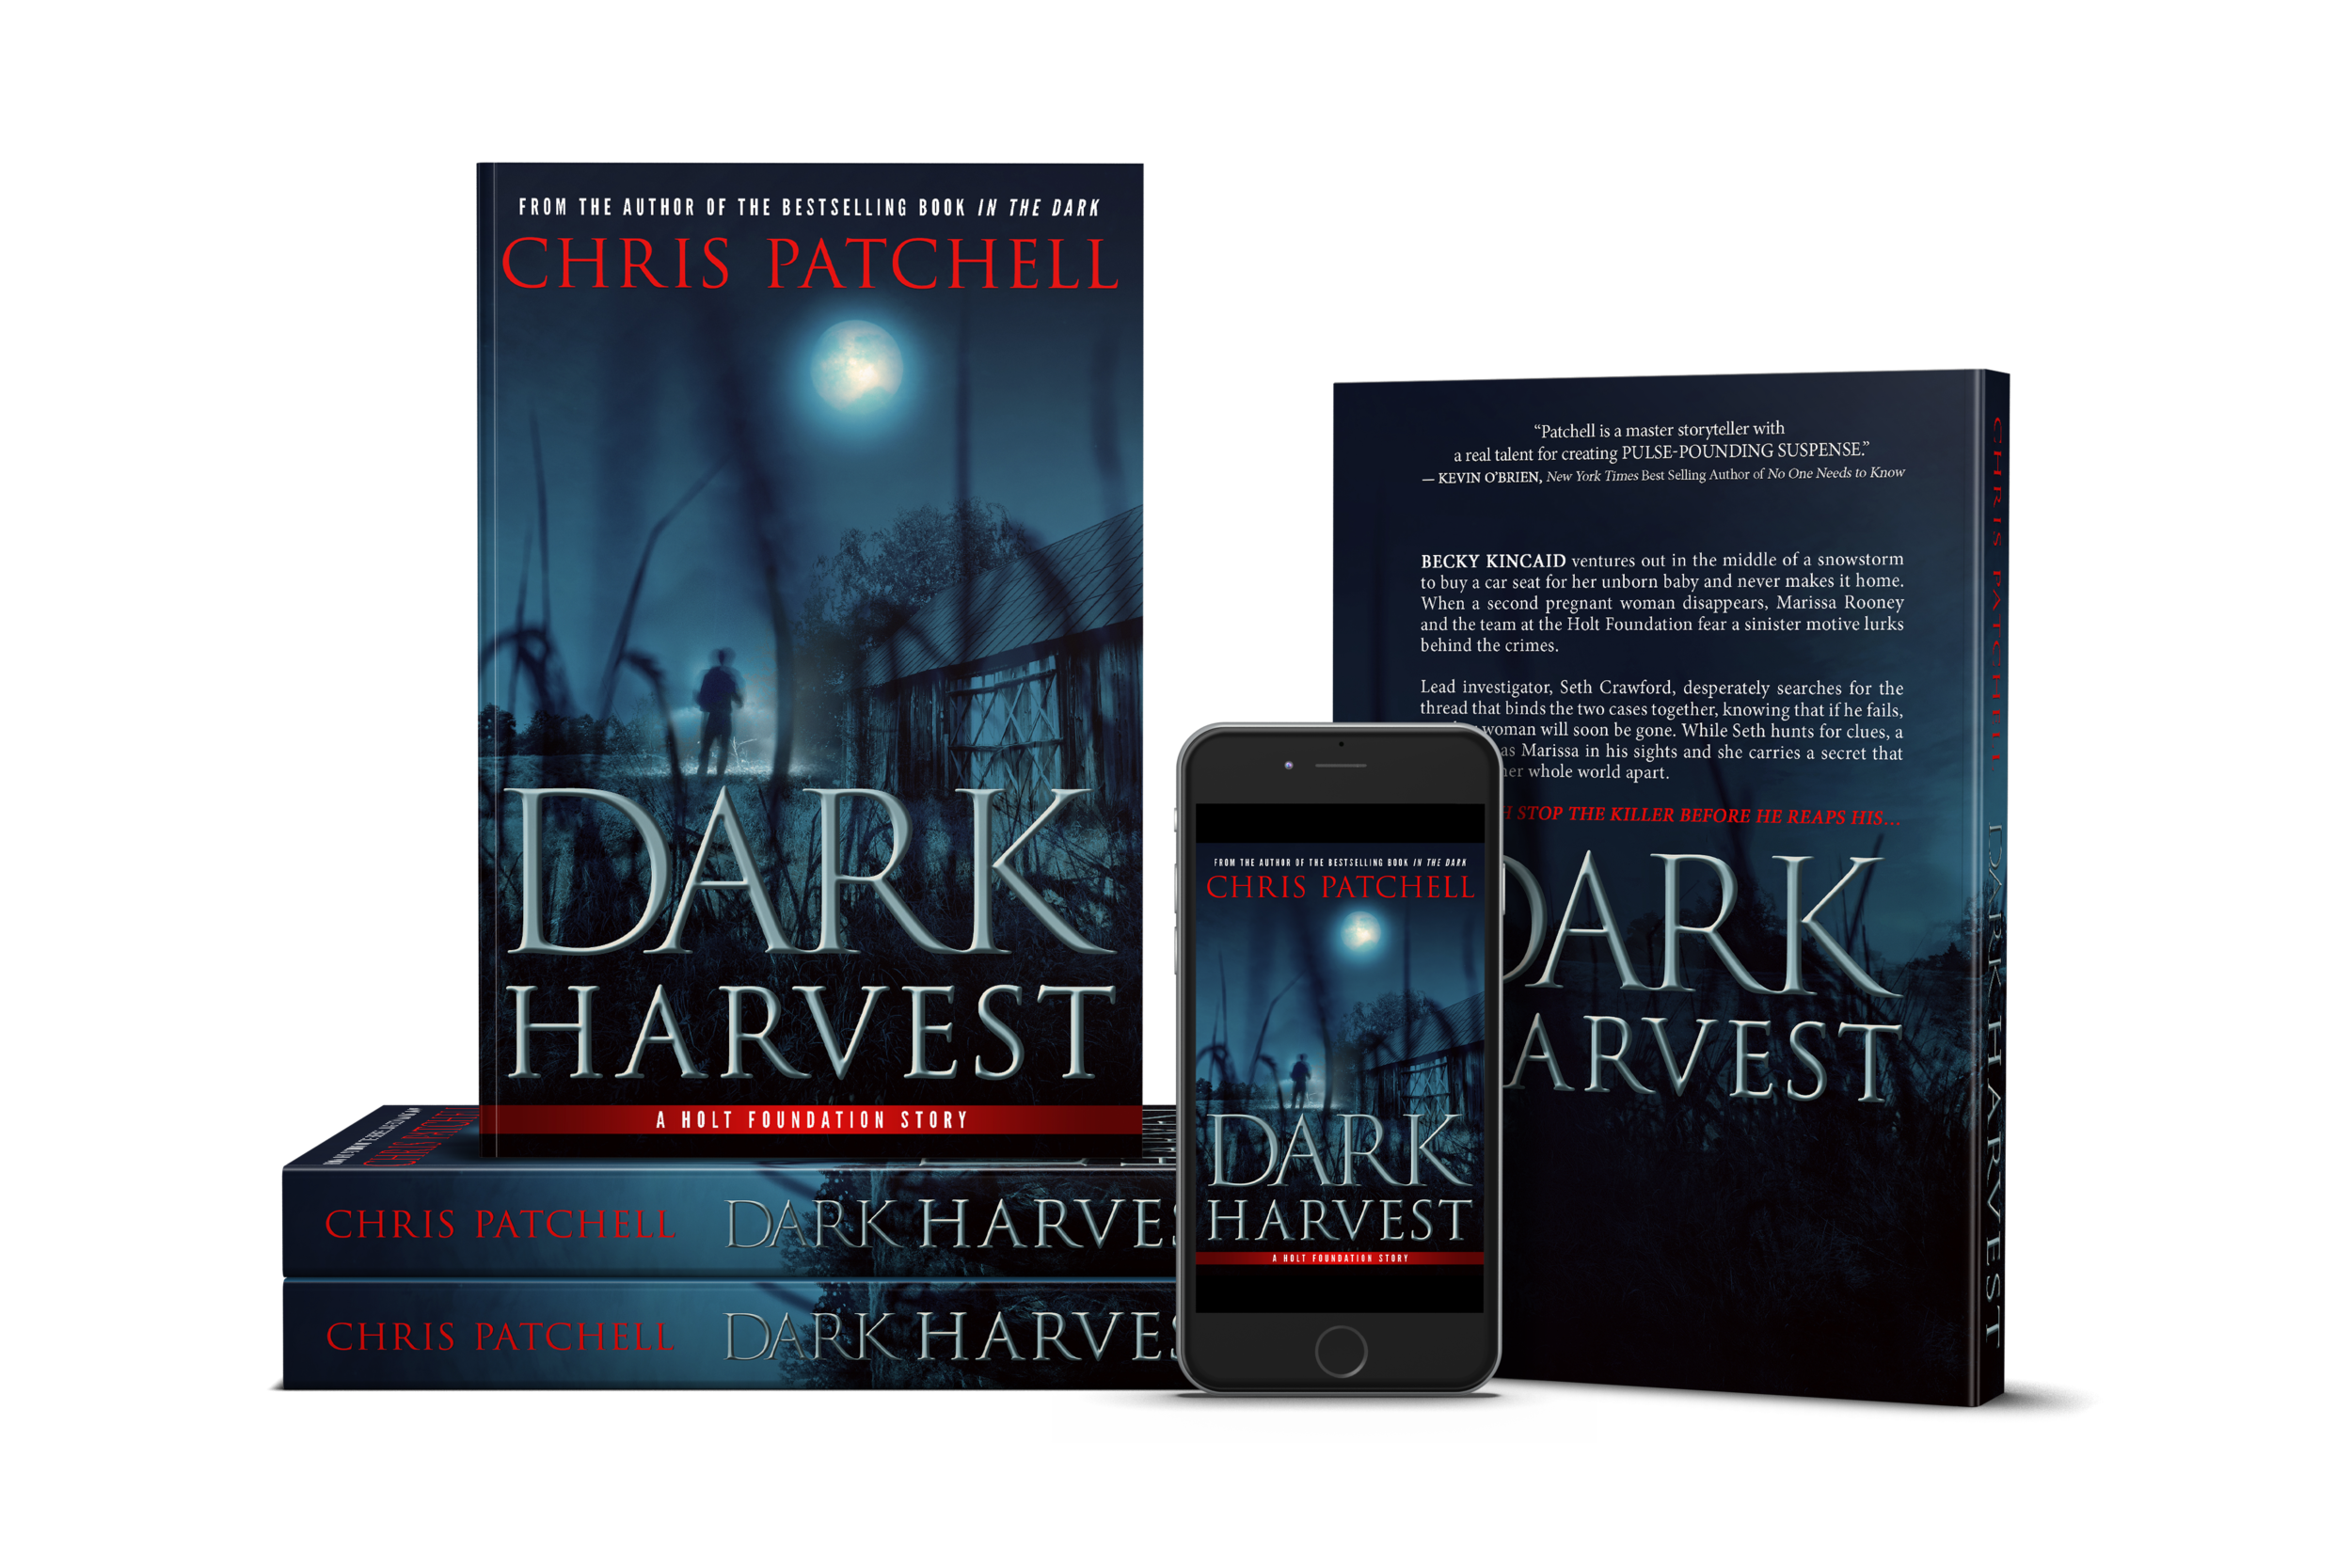 Chris Patchell's Dark Harvest || Designed by The Thatchery